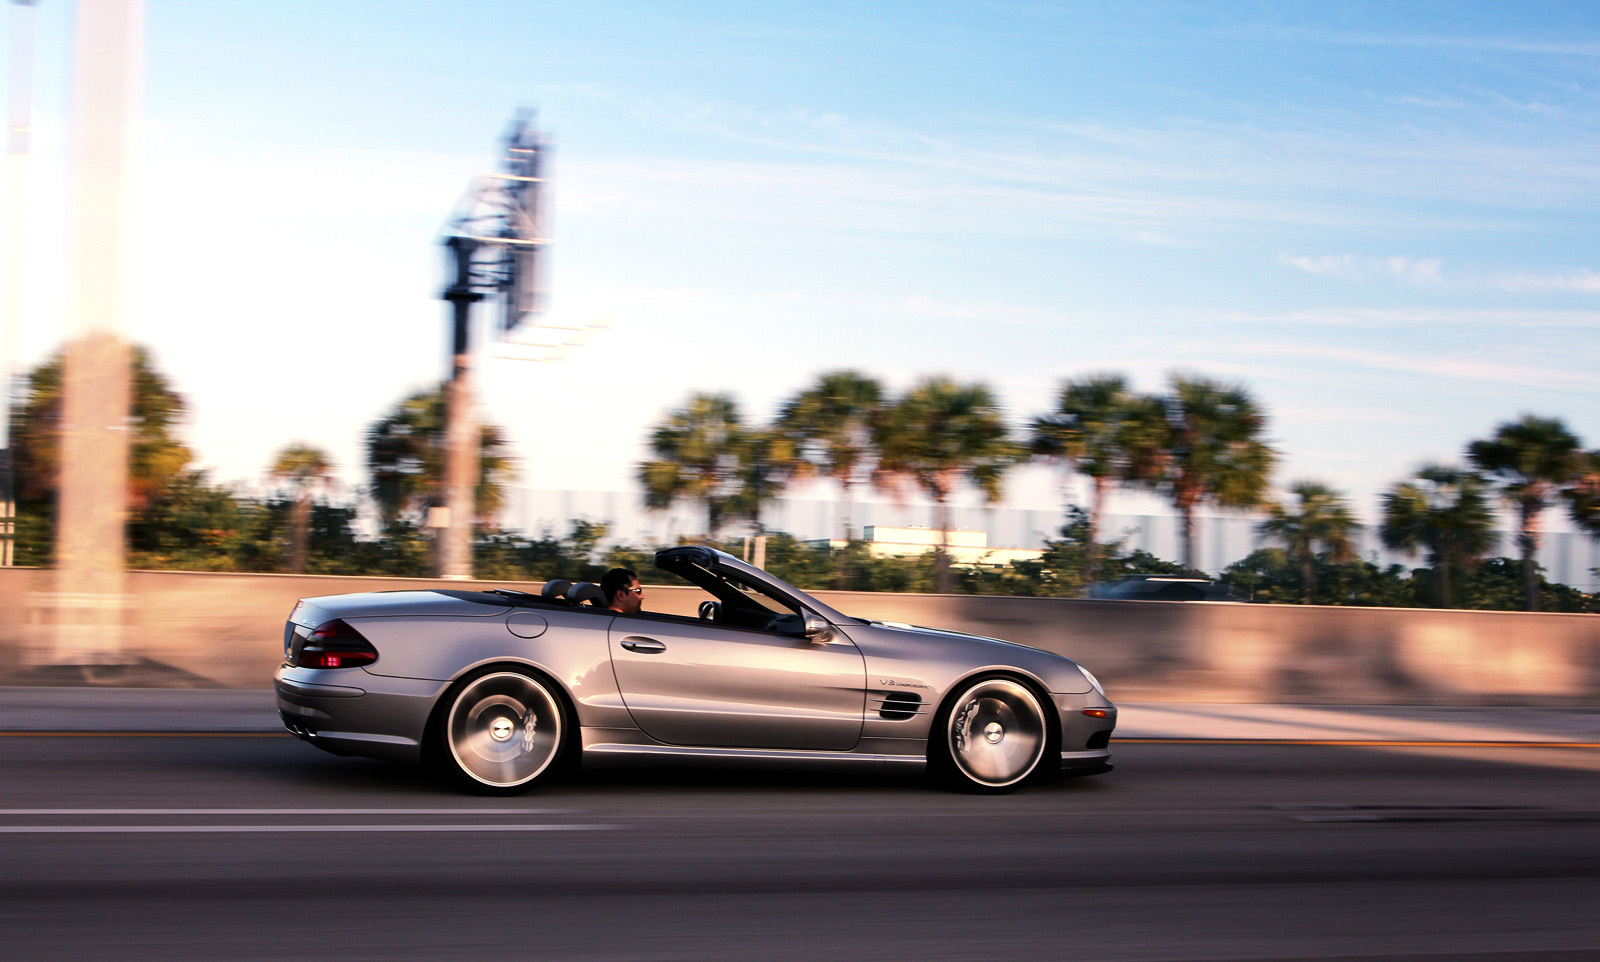 Mercedes Benz 2007 mercedes benz sl55 amg : Mercedes-Benz SL55 AMG (R230) Review & Buyers Guide | Exotic Car Hacks